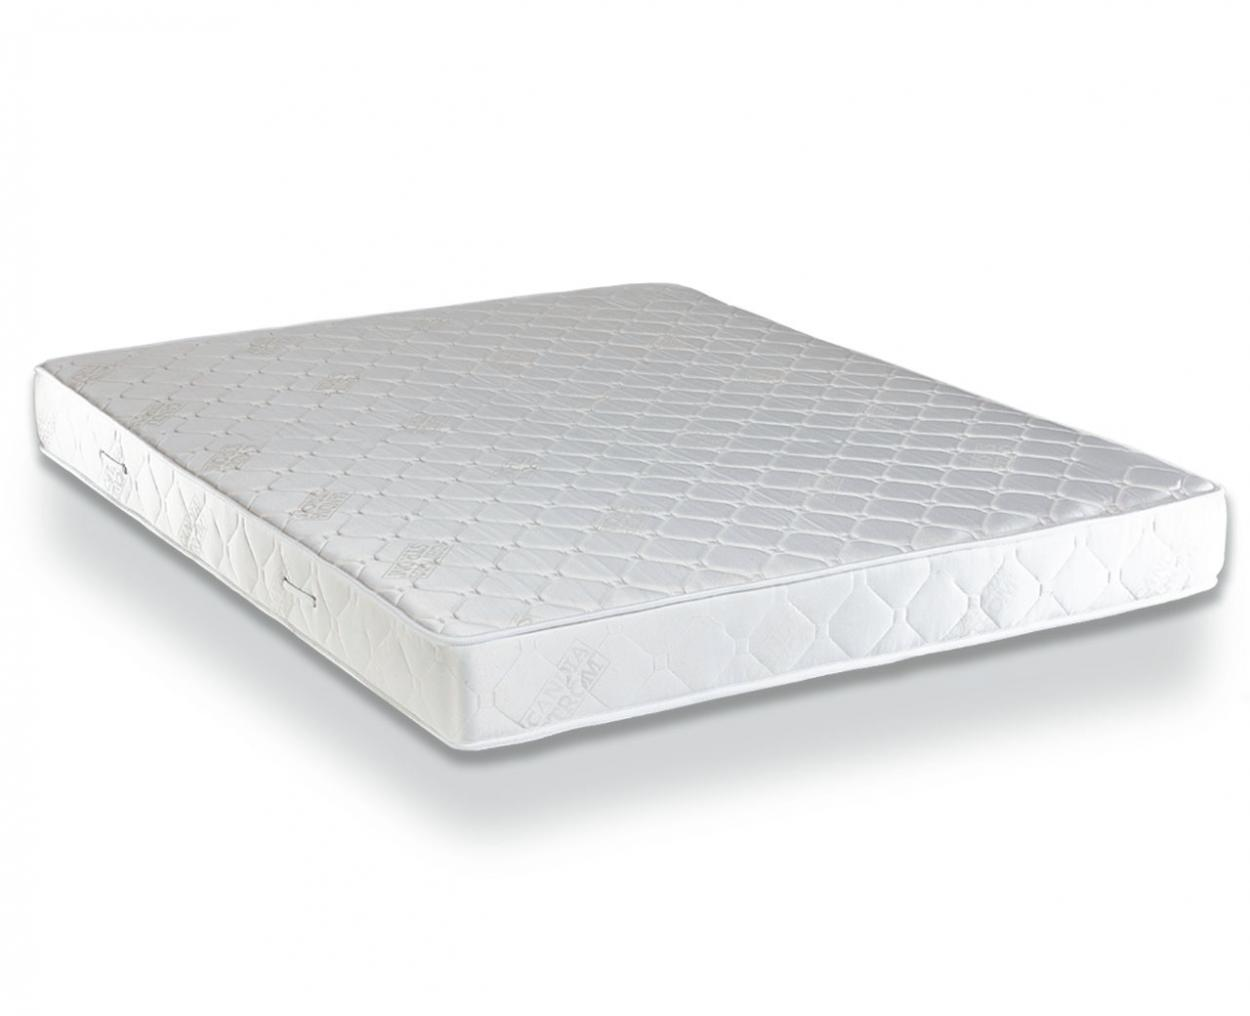 CandiaStrom - Mattress AURA - CLASSIC COLLECTION - General Image